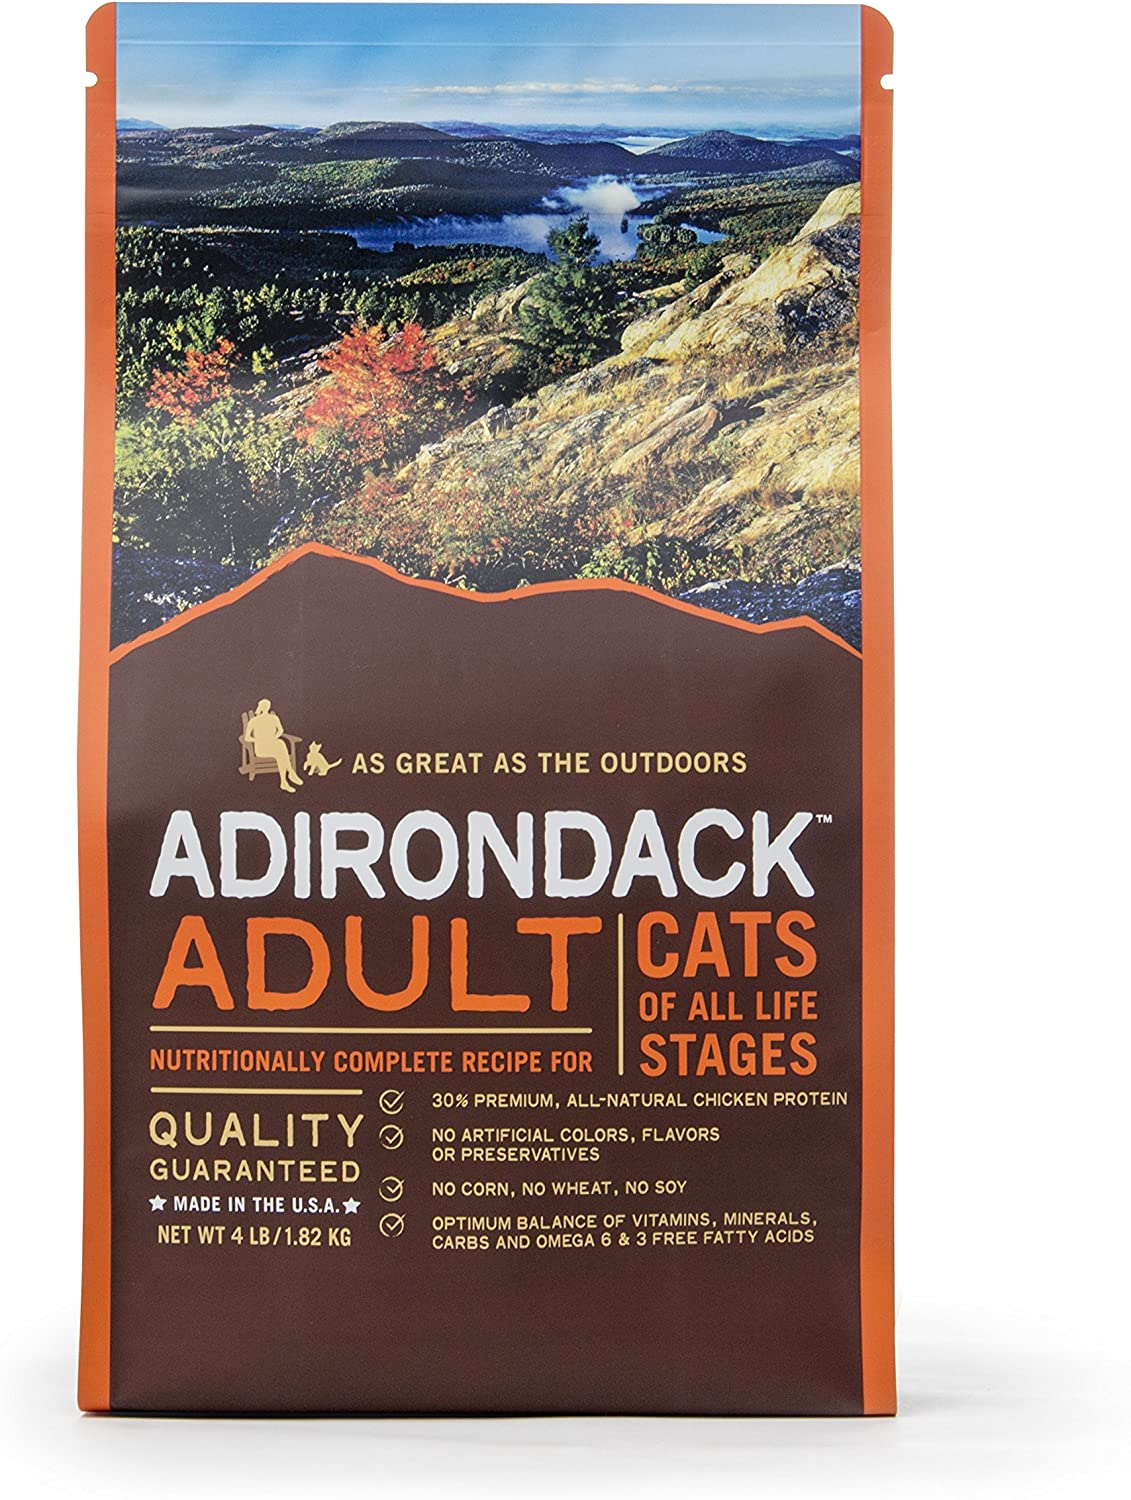 Adirondack Pet Food 22490 Adult Nutritionally Complete For Cats Of All Life Stages, 4Lb.